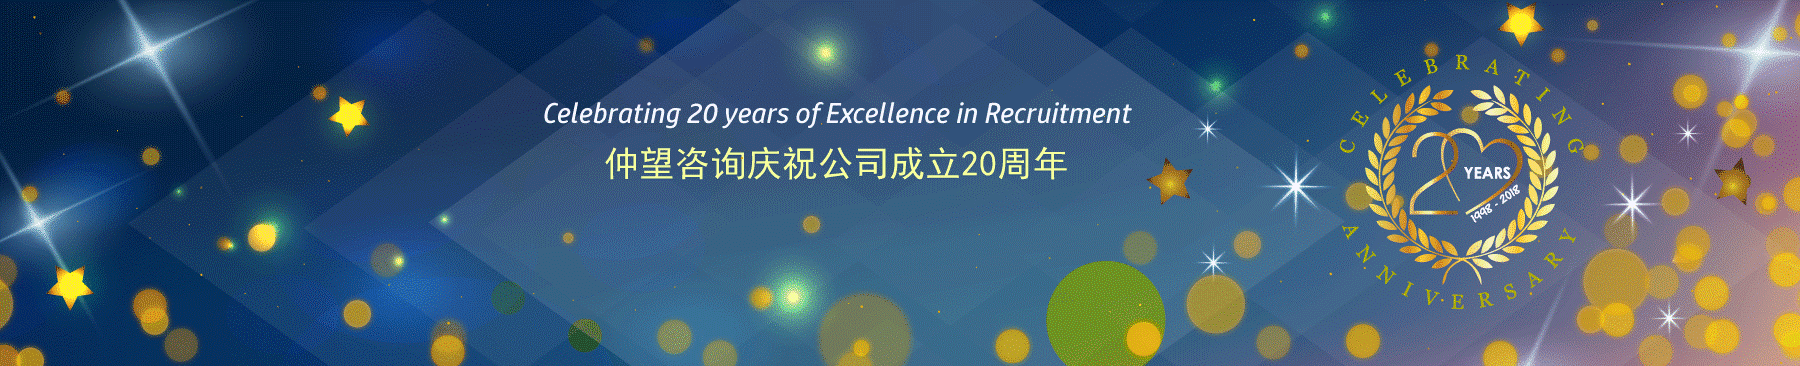 ZW HR Consulting – InterSearch China celebrates the 20th anniversary